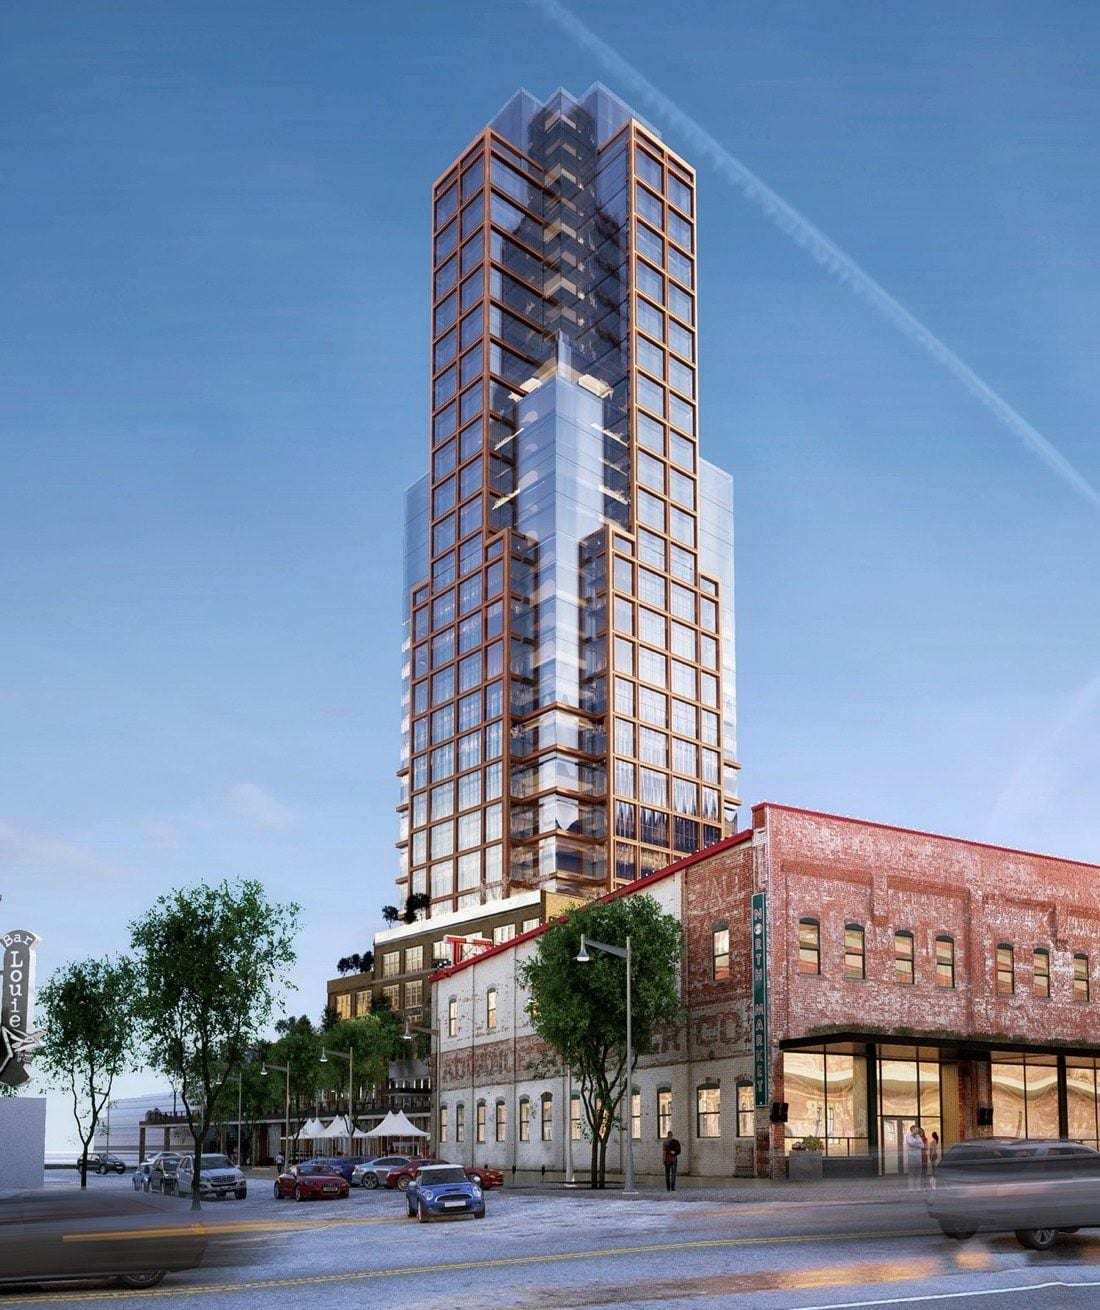 Previous Market Tower rendering